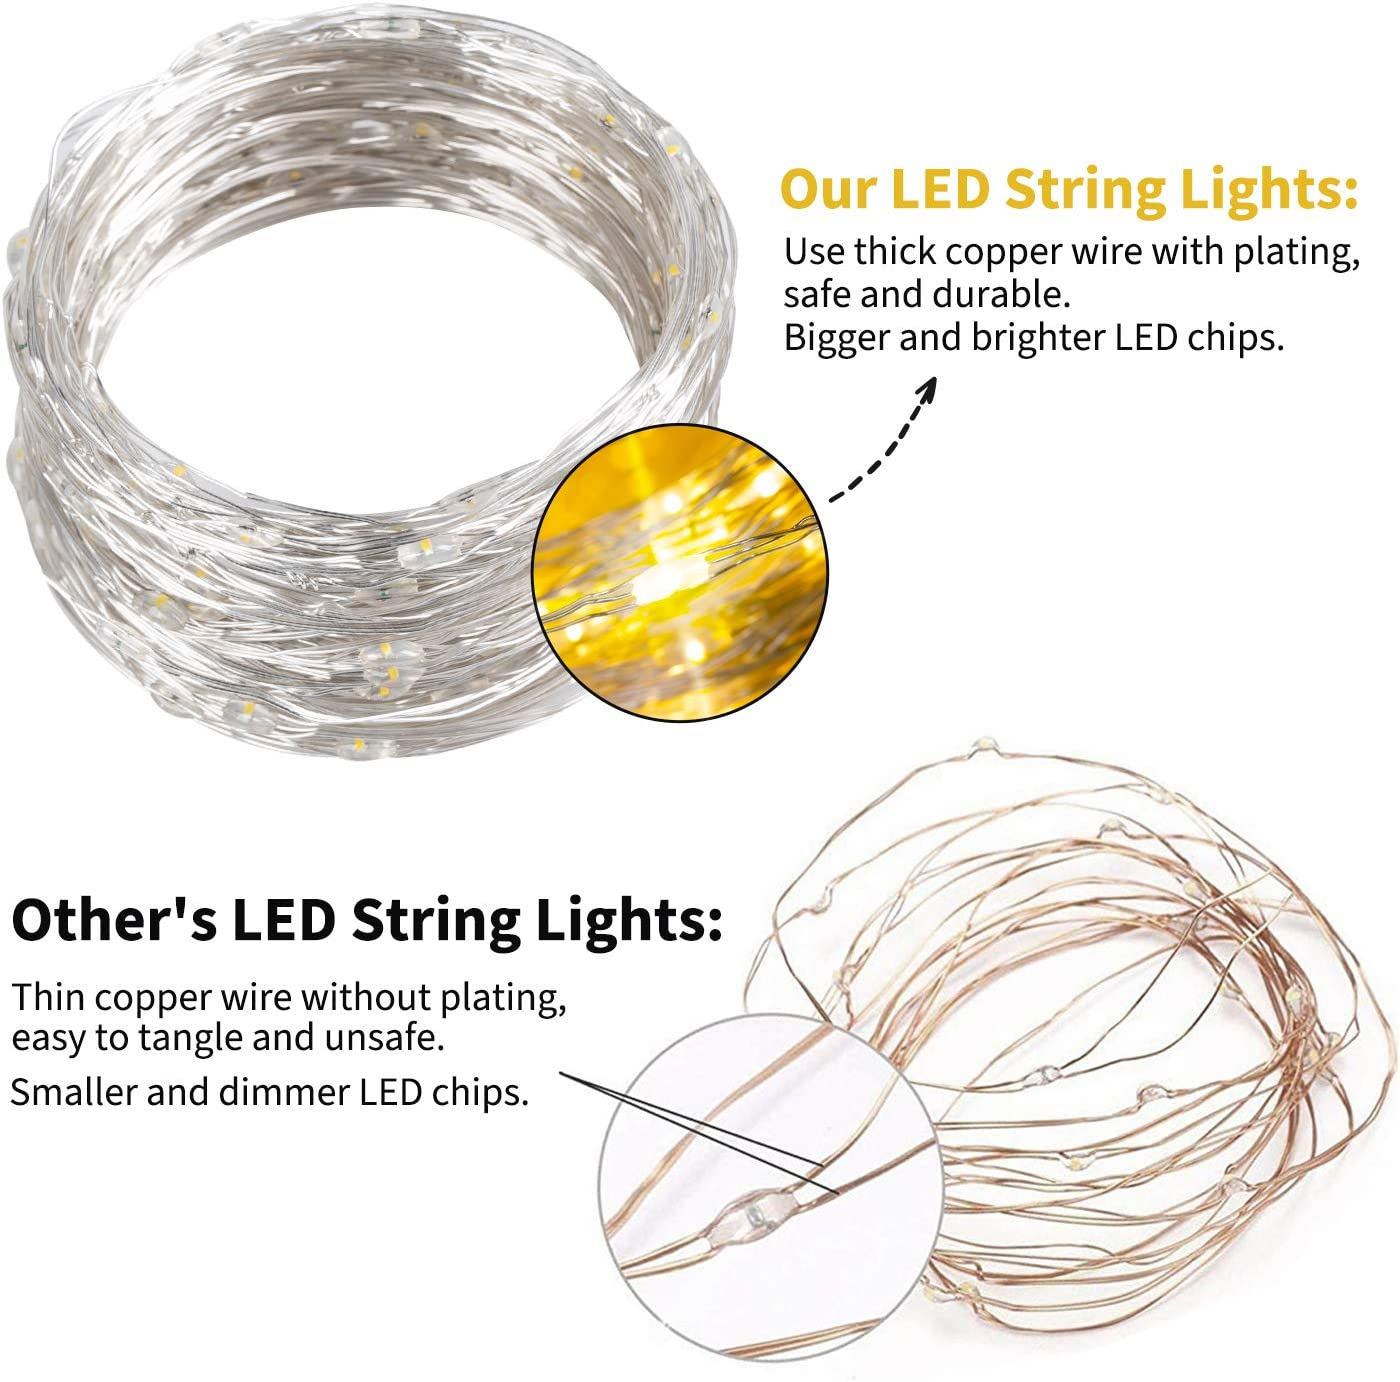 USB Fairy String Lights with Remote & Power Adapter, 66Ft 200 LED Firefly Lights for Bedroom Wall Ceiling Christmas Tree Wreath Craft Wedding Party Decoration, Warm White - -